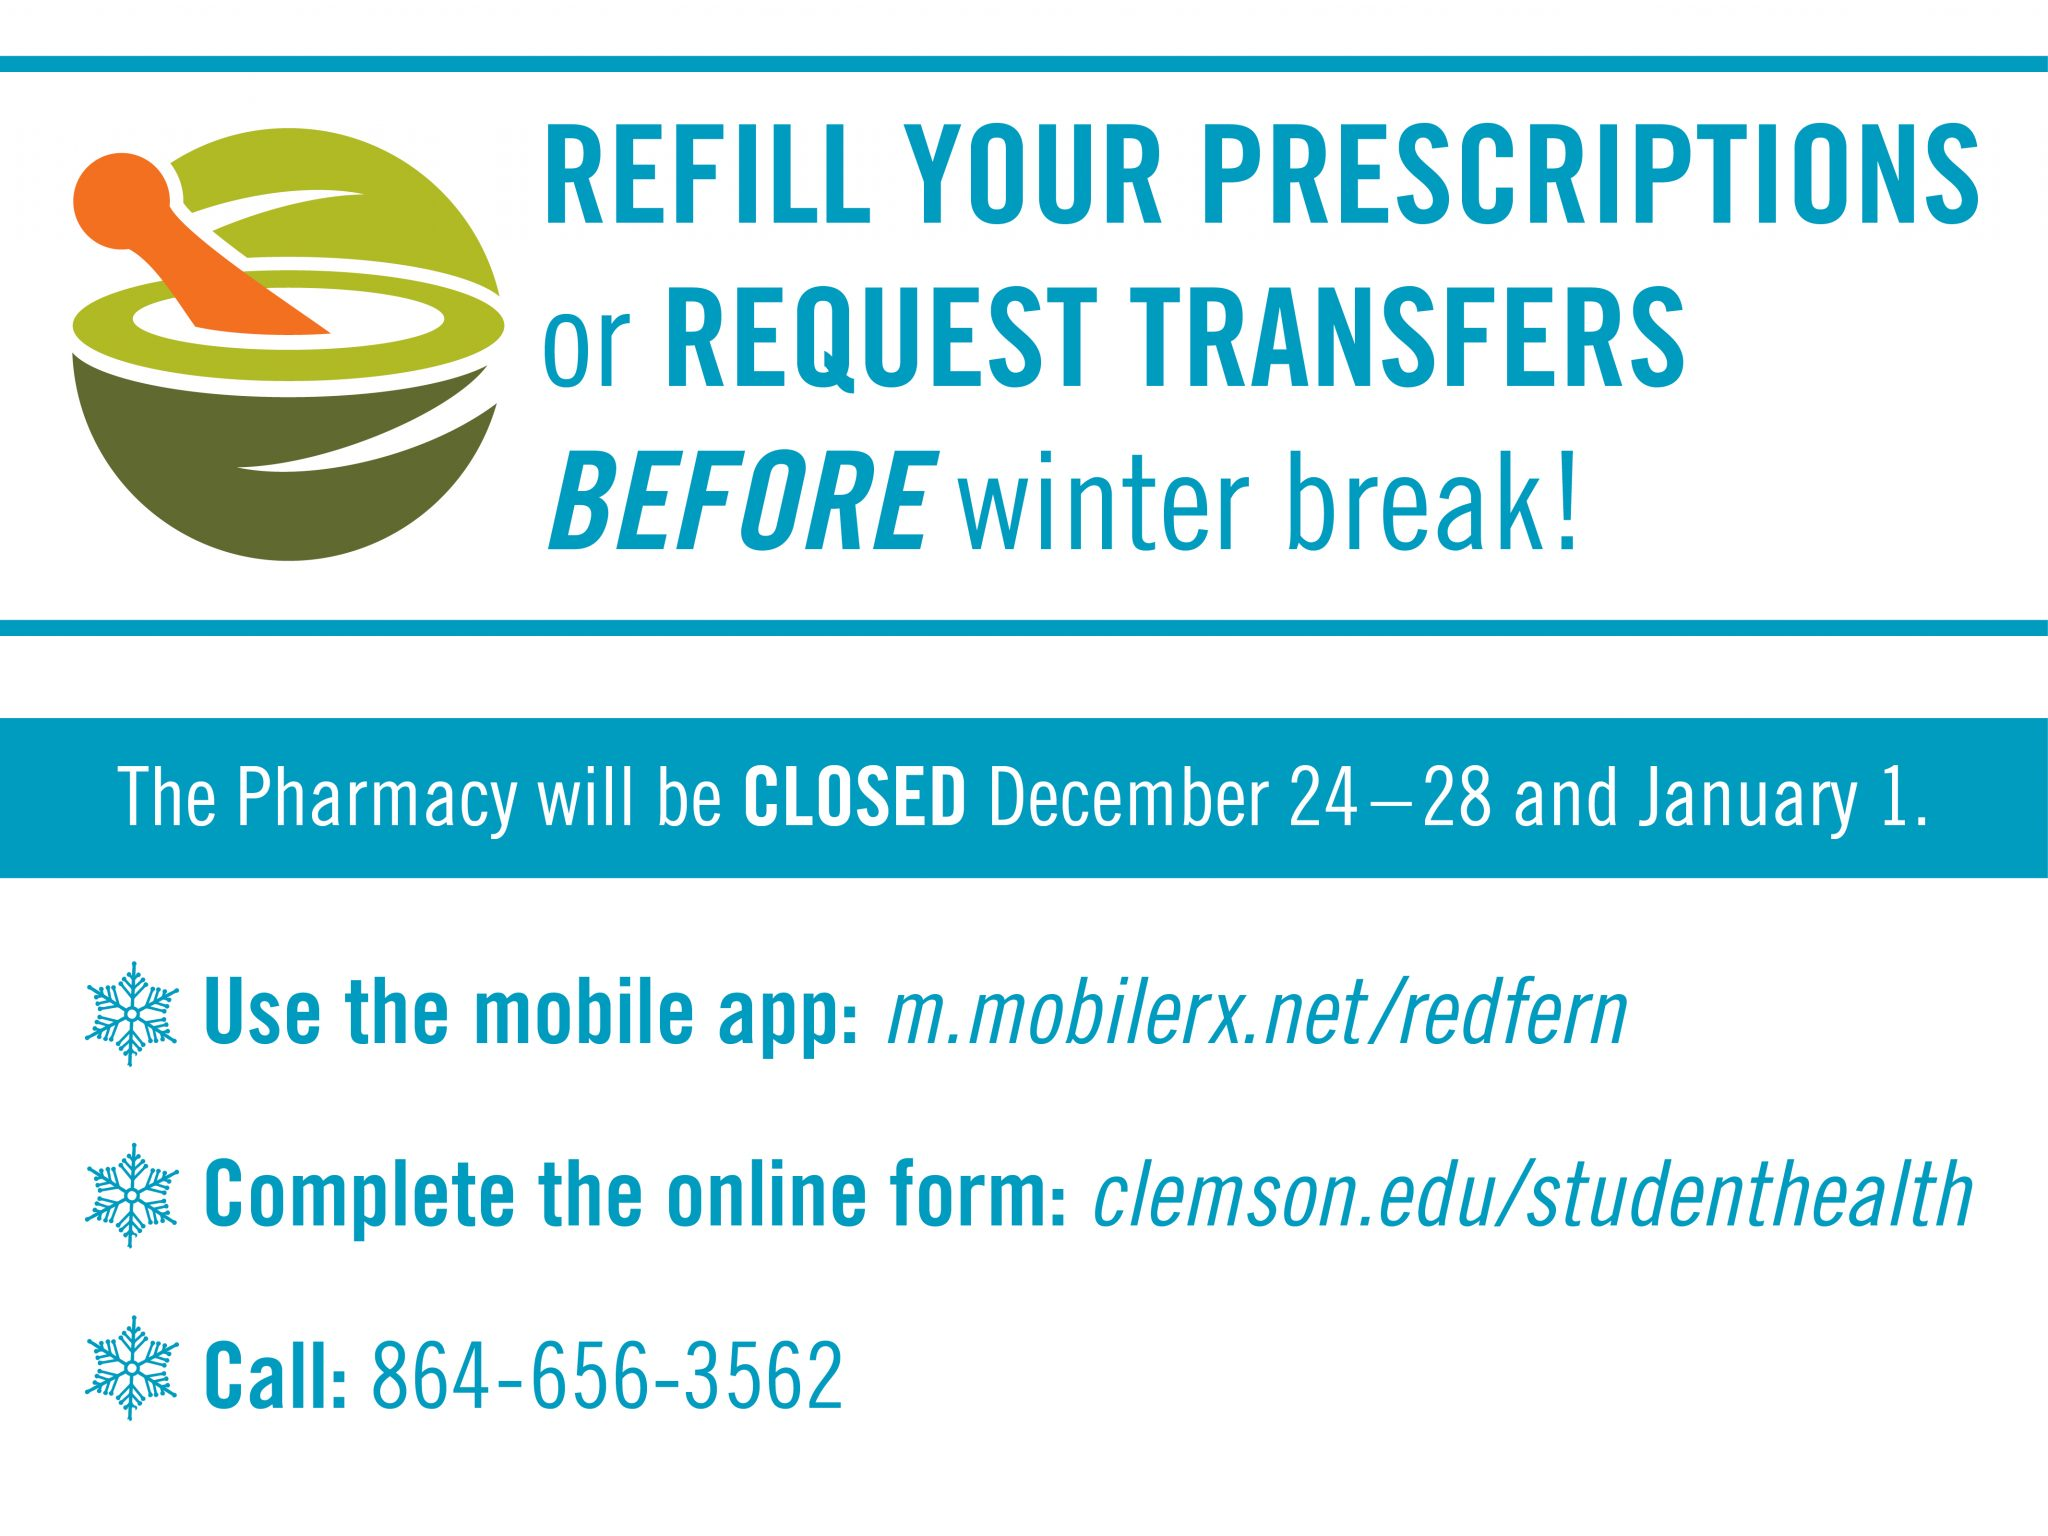 Refill your prescriptions